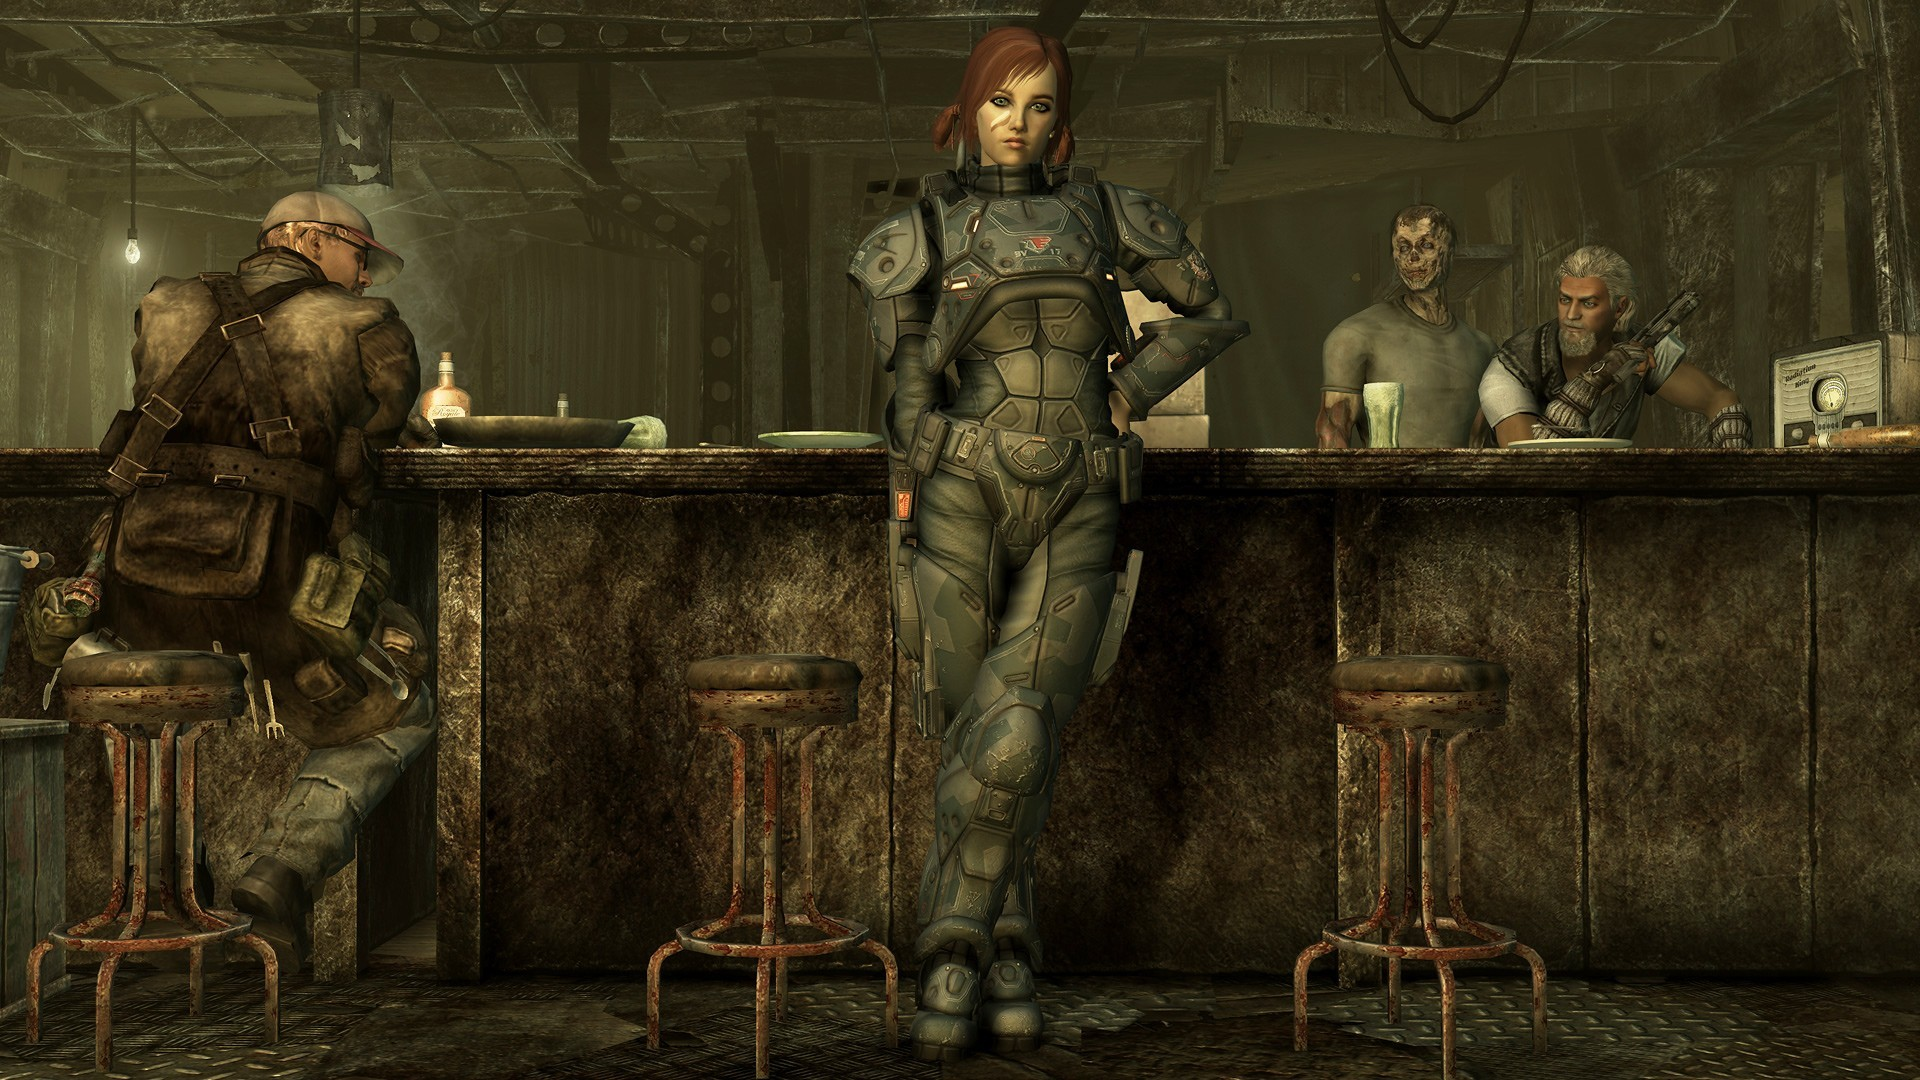 fallout girl wallpaper, mission impossible fallout hd wallpaper